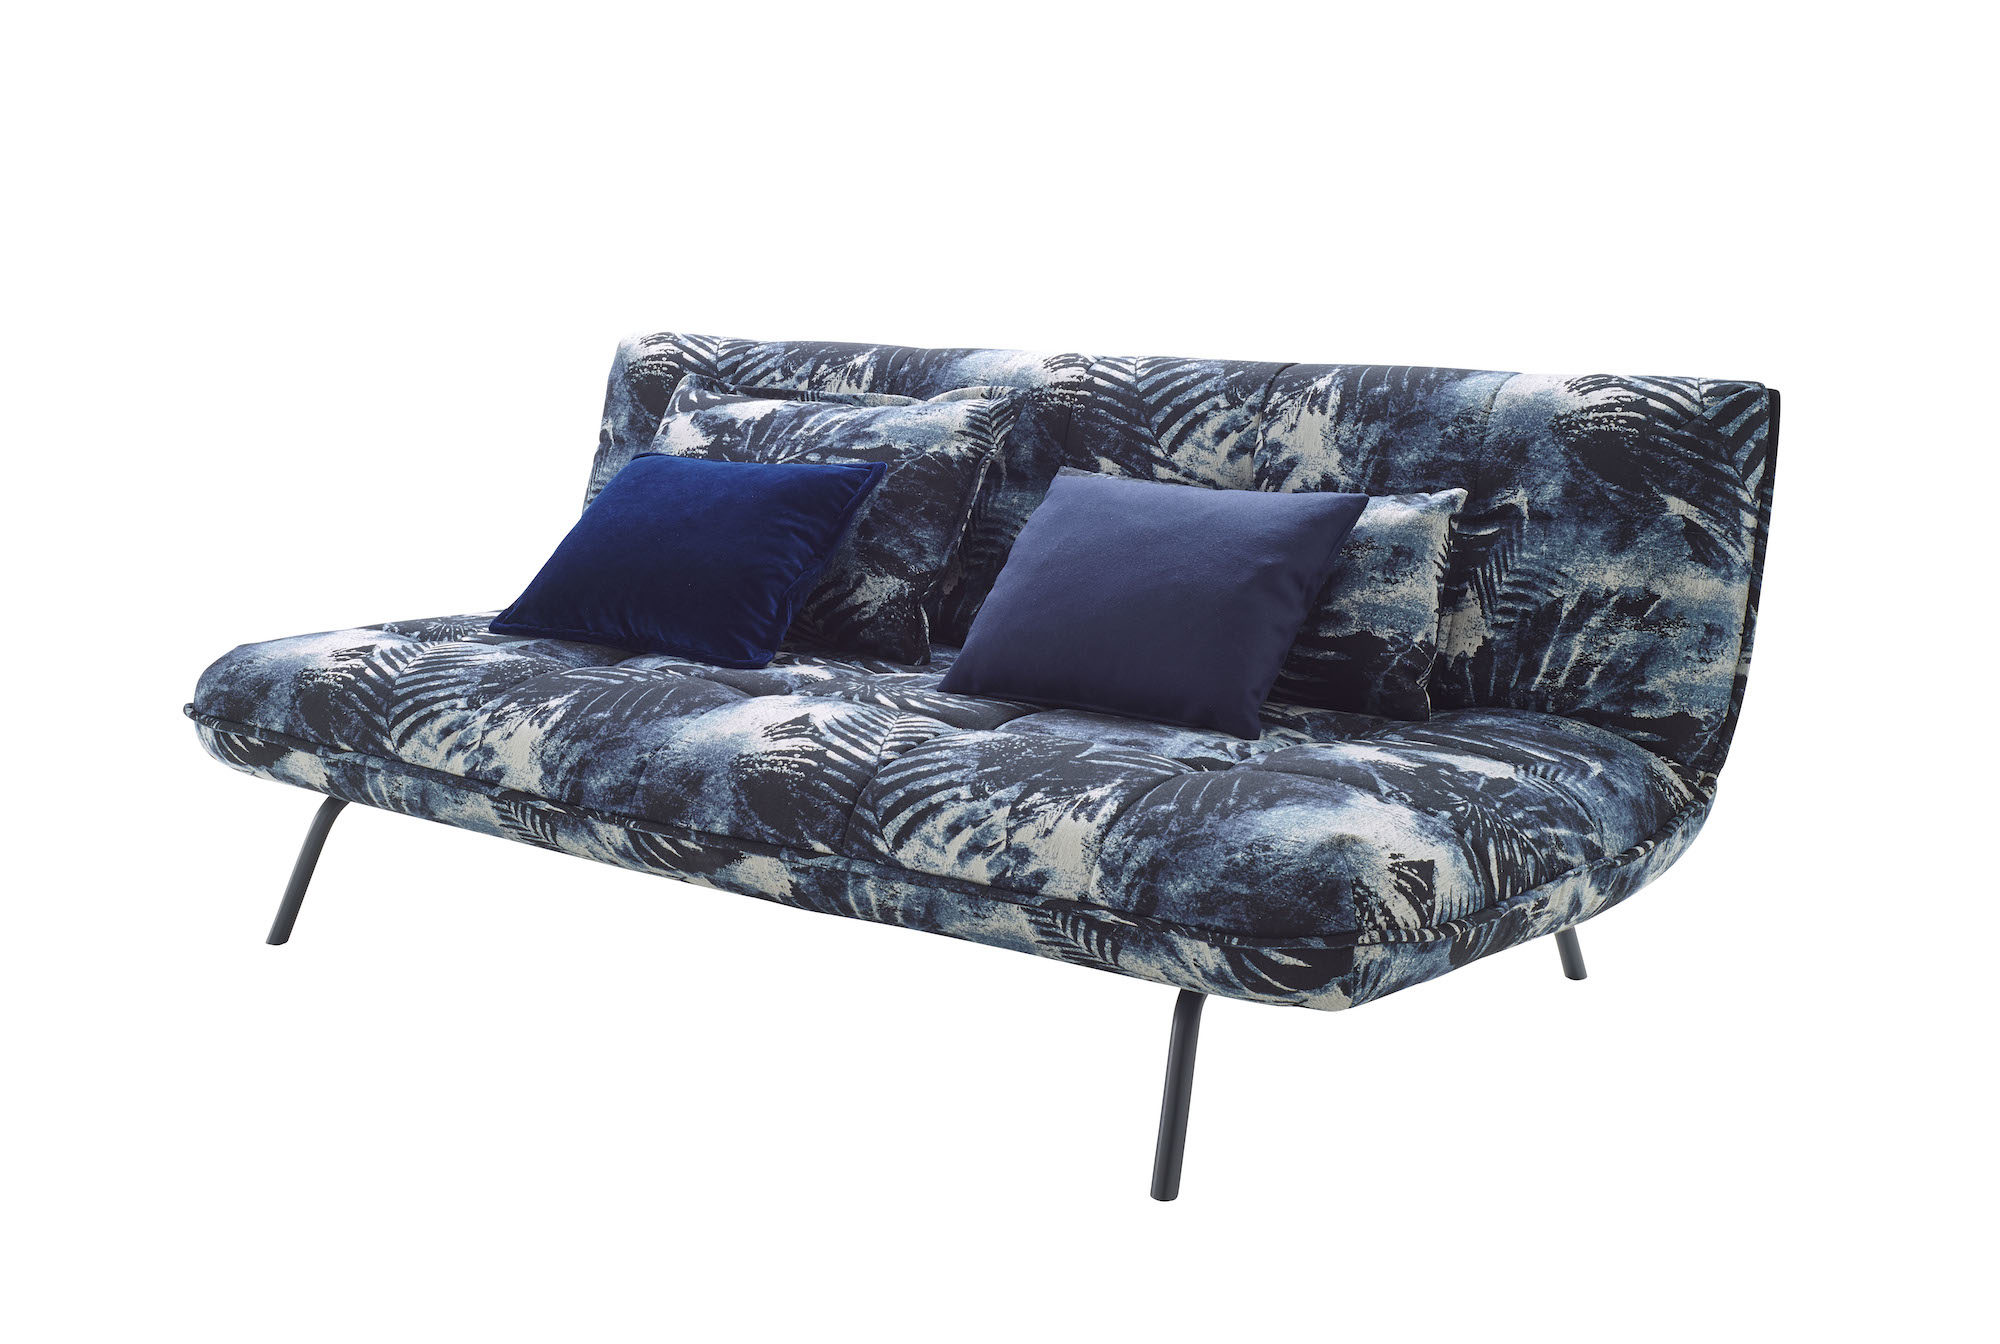 Futon World Berlin Trump Talk At Maison Objet And Beyond Surface